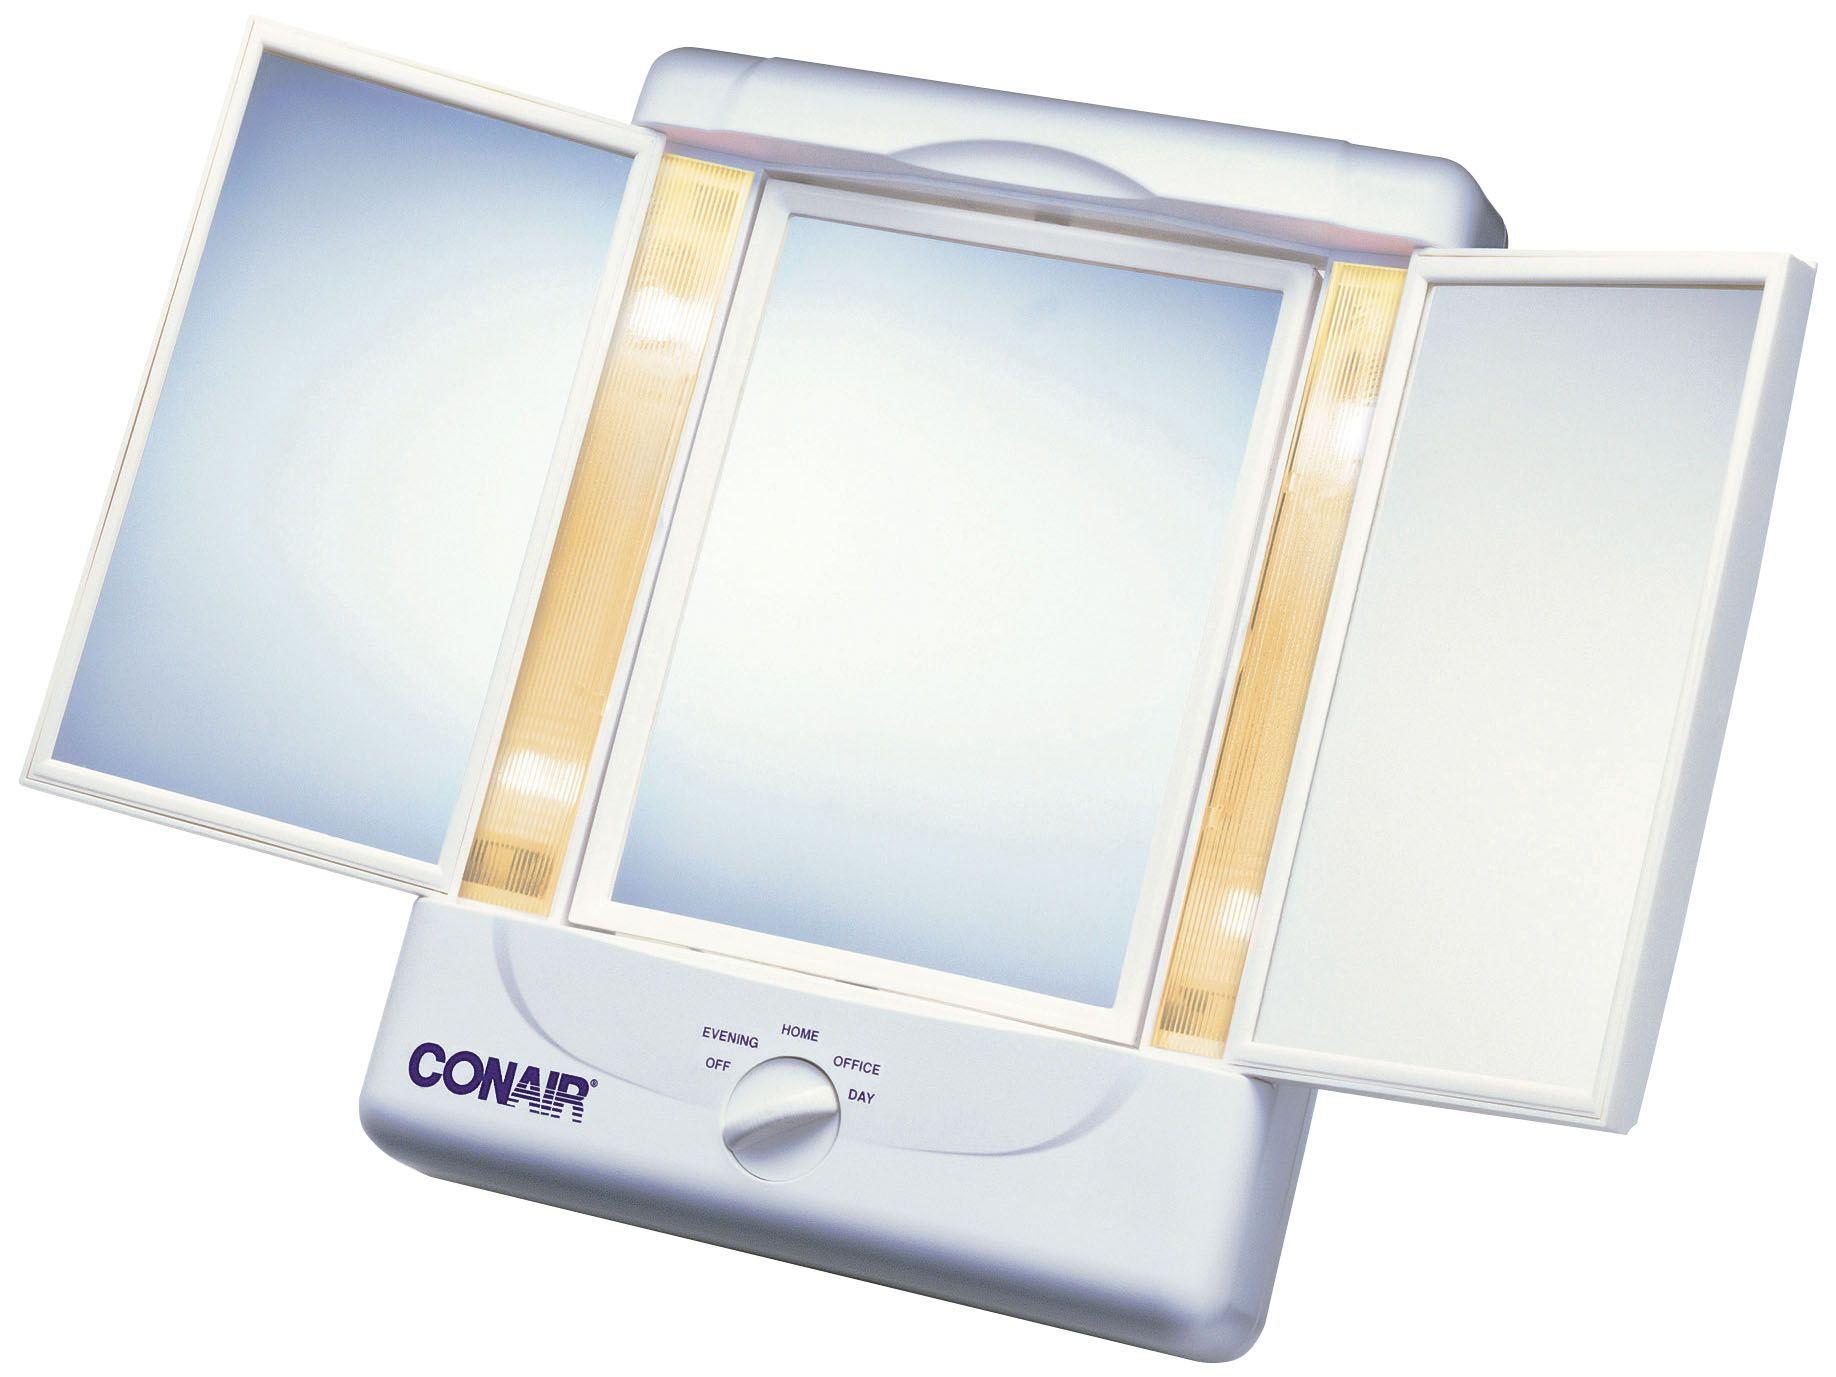 Conair Lighted Makeup Mirror | Conair Lighted Makeup Mirror | Conair Reflections Mirror